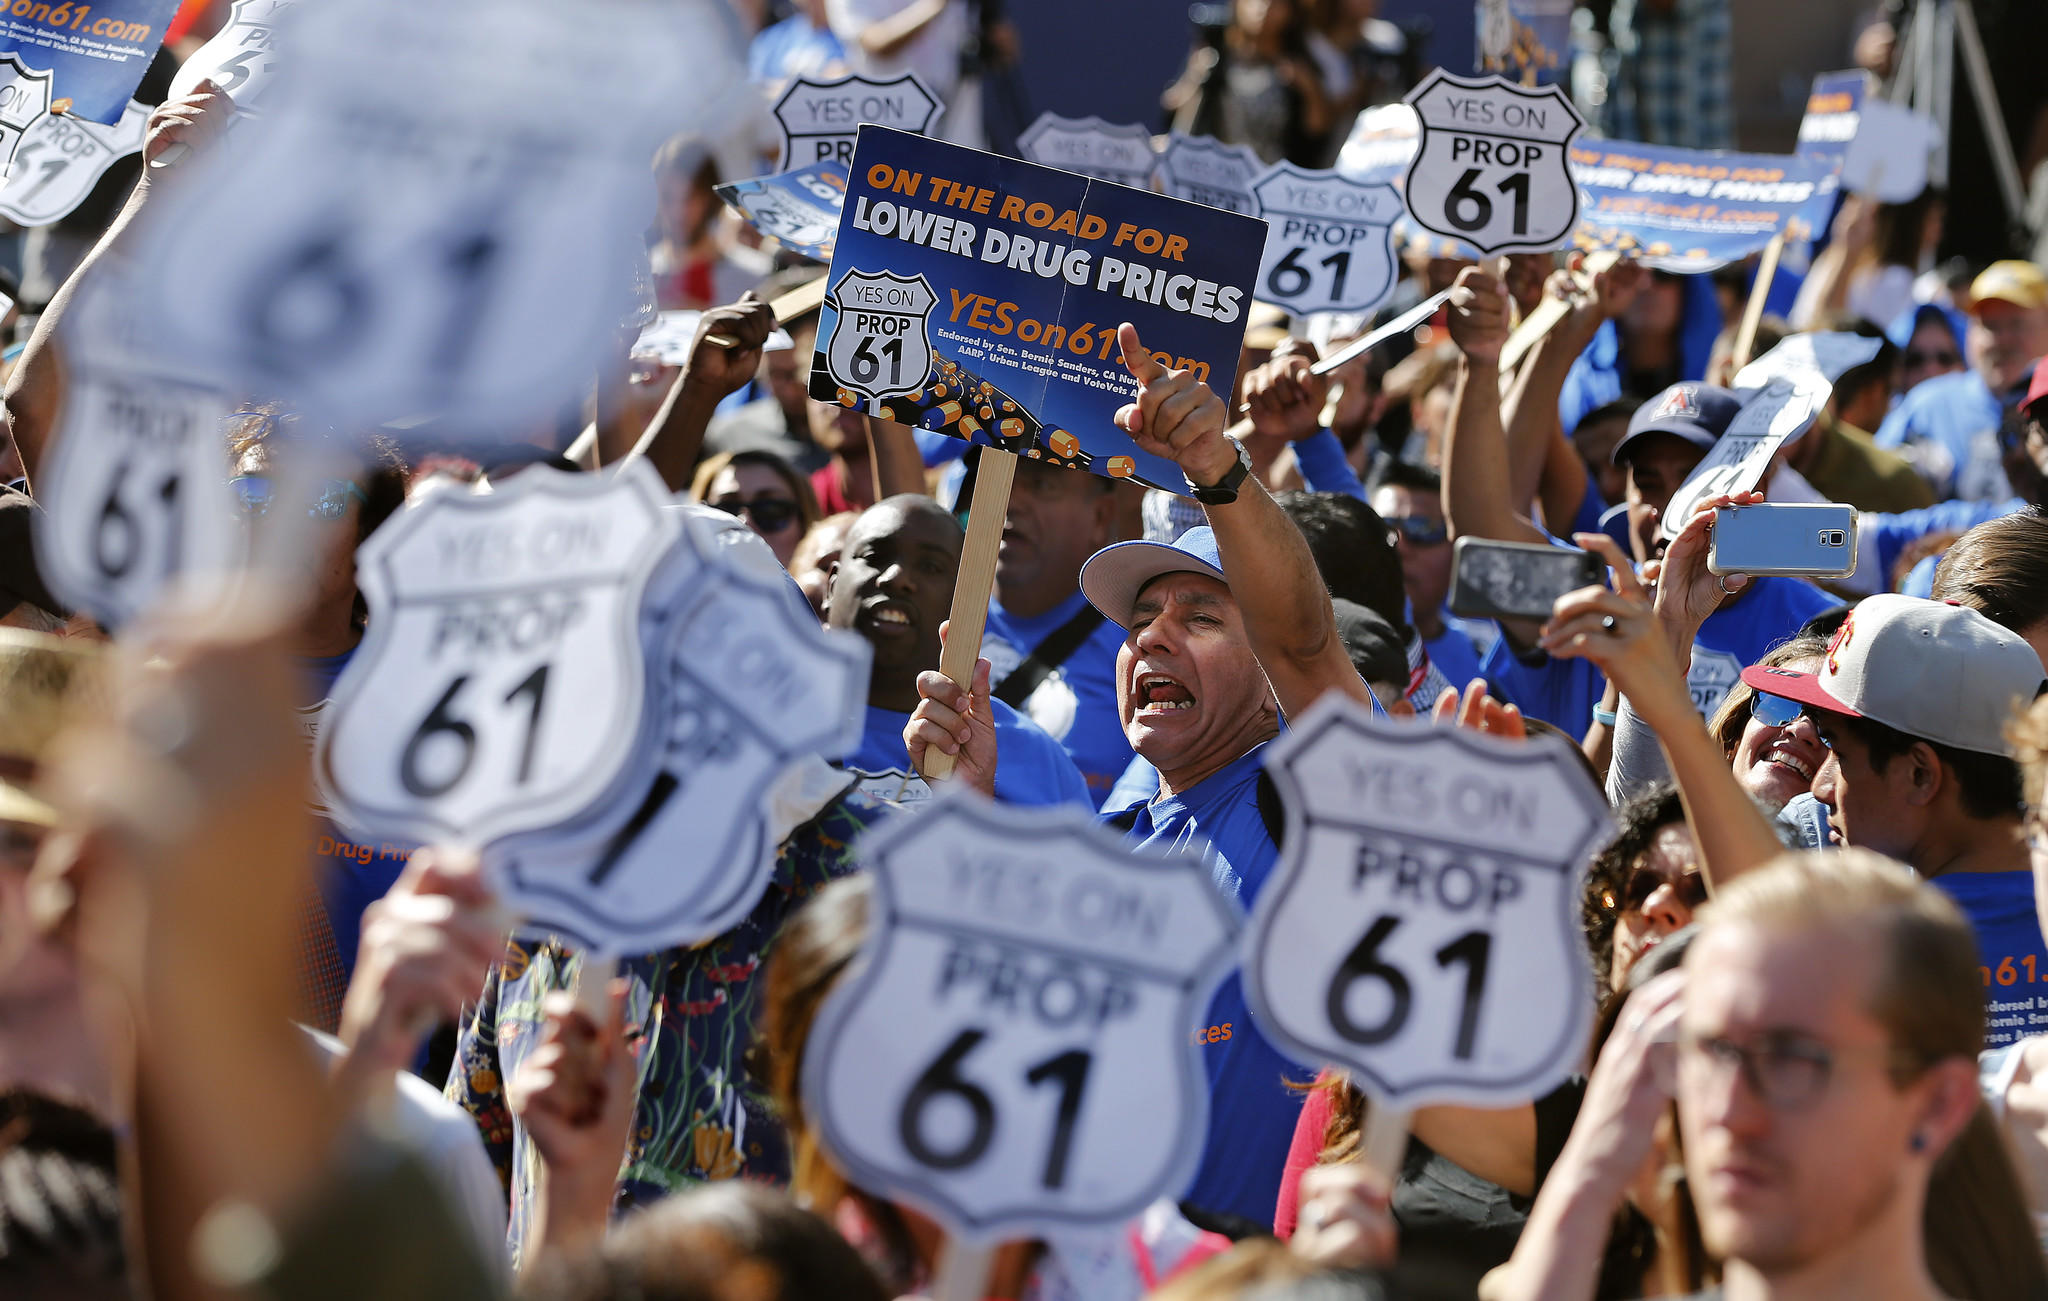 About 200 people attend the Bernie Sanders rally in Los Angeles. (Mel Melcon / Los Angeles Times)